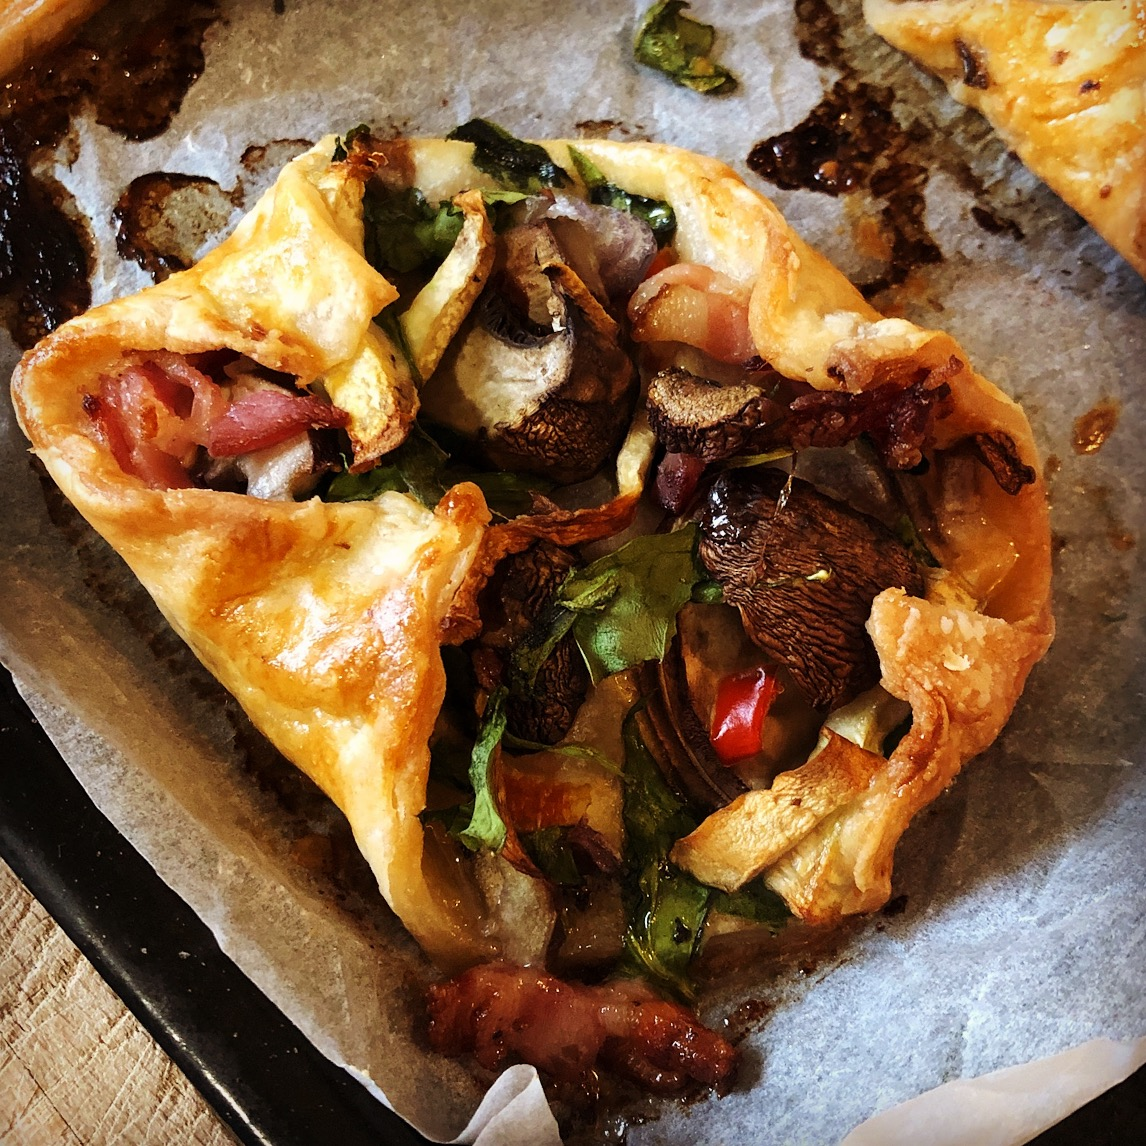 Gluten Free Mushroom, Spinach and Bacon Puffs